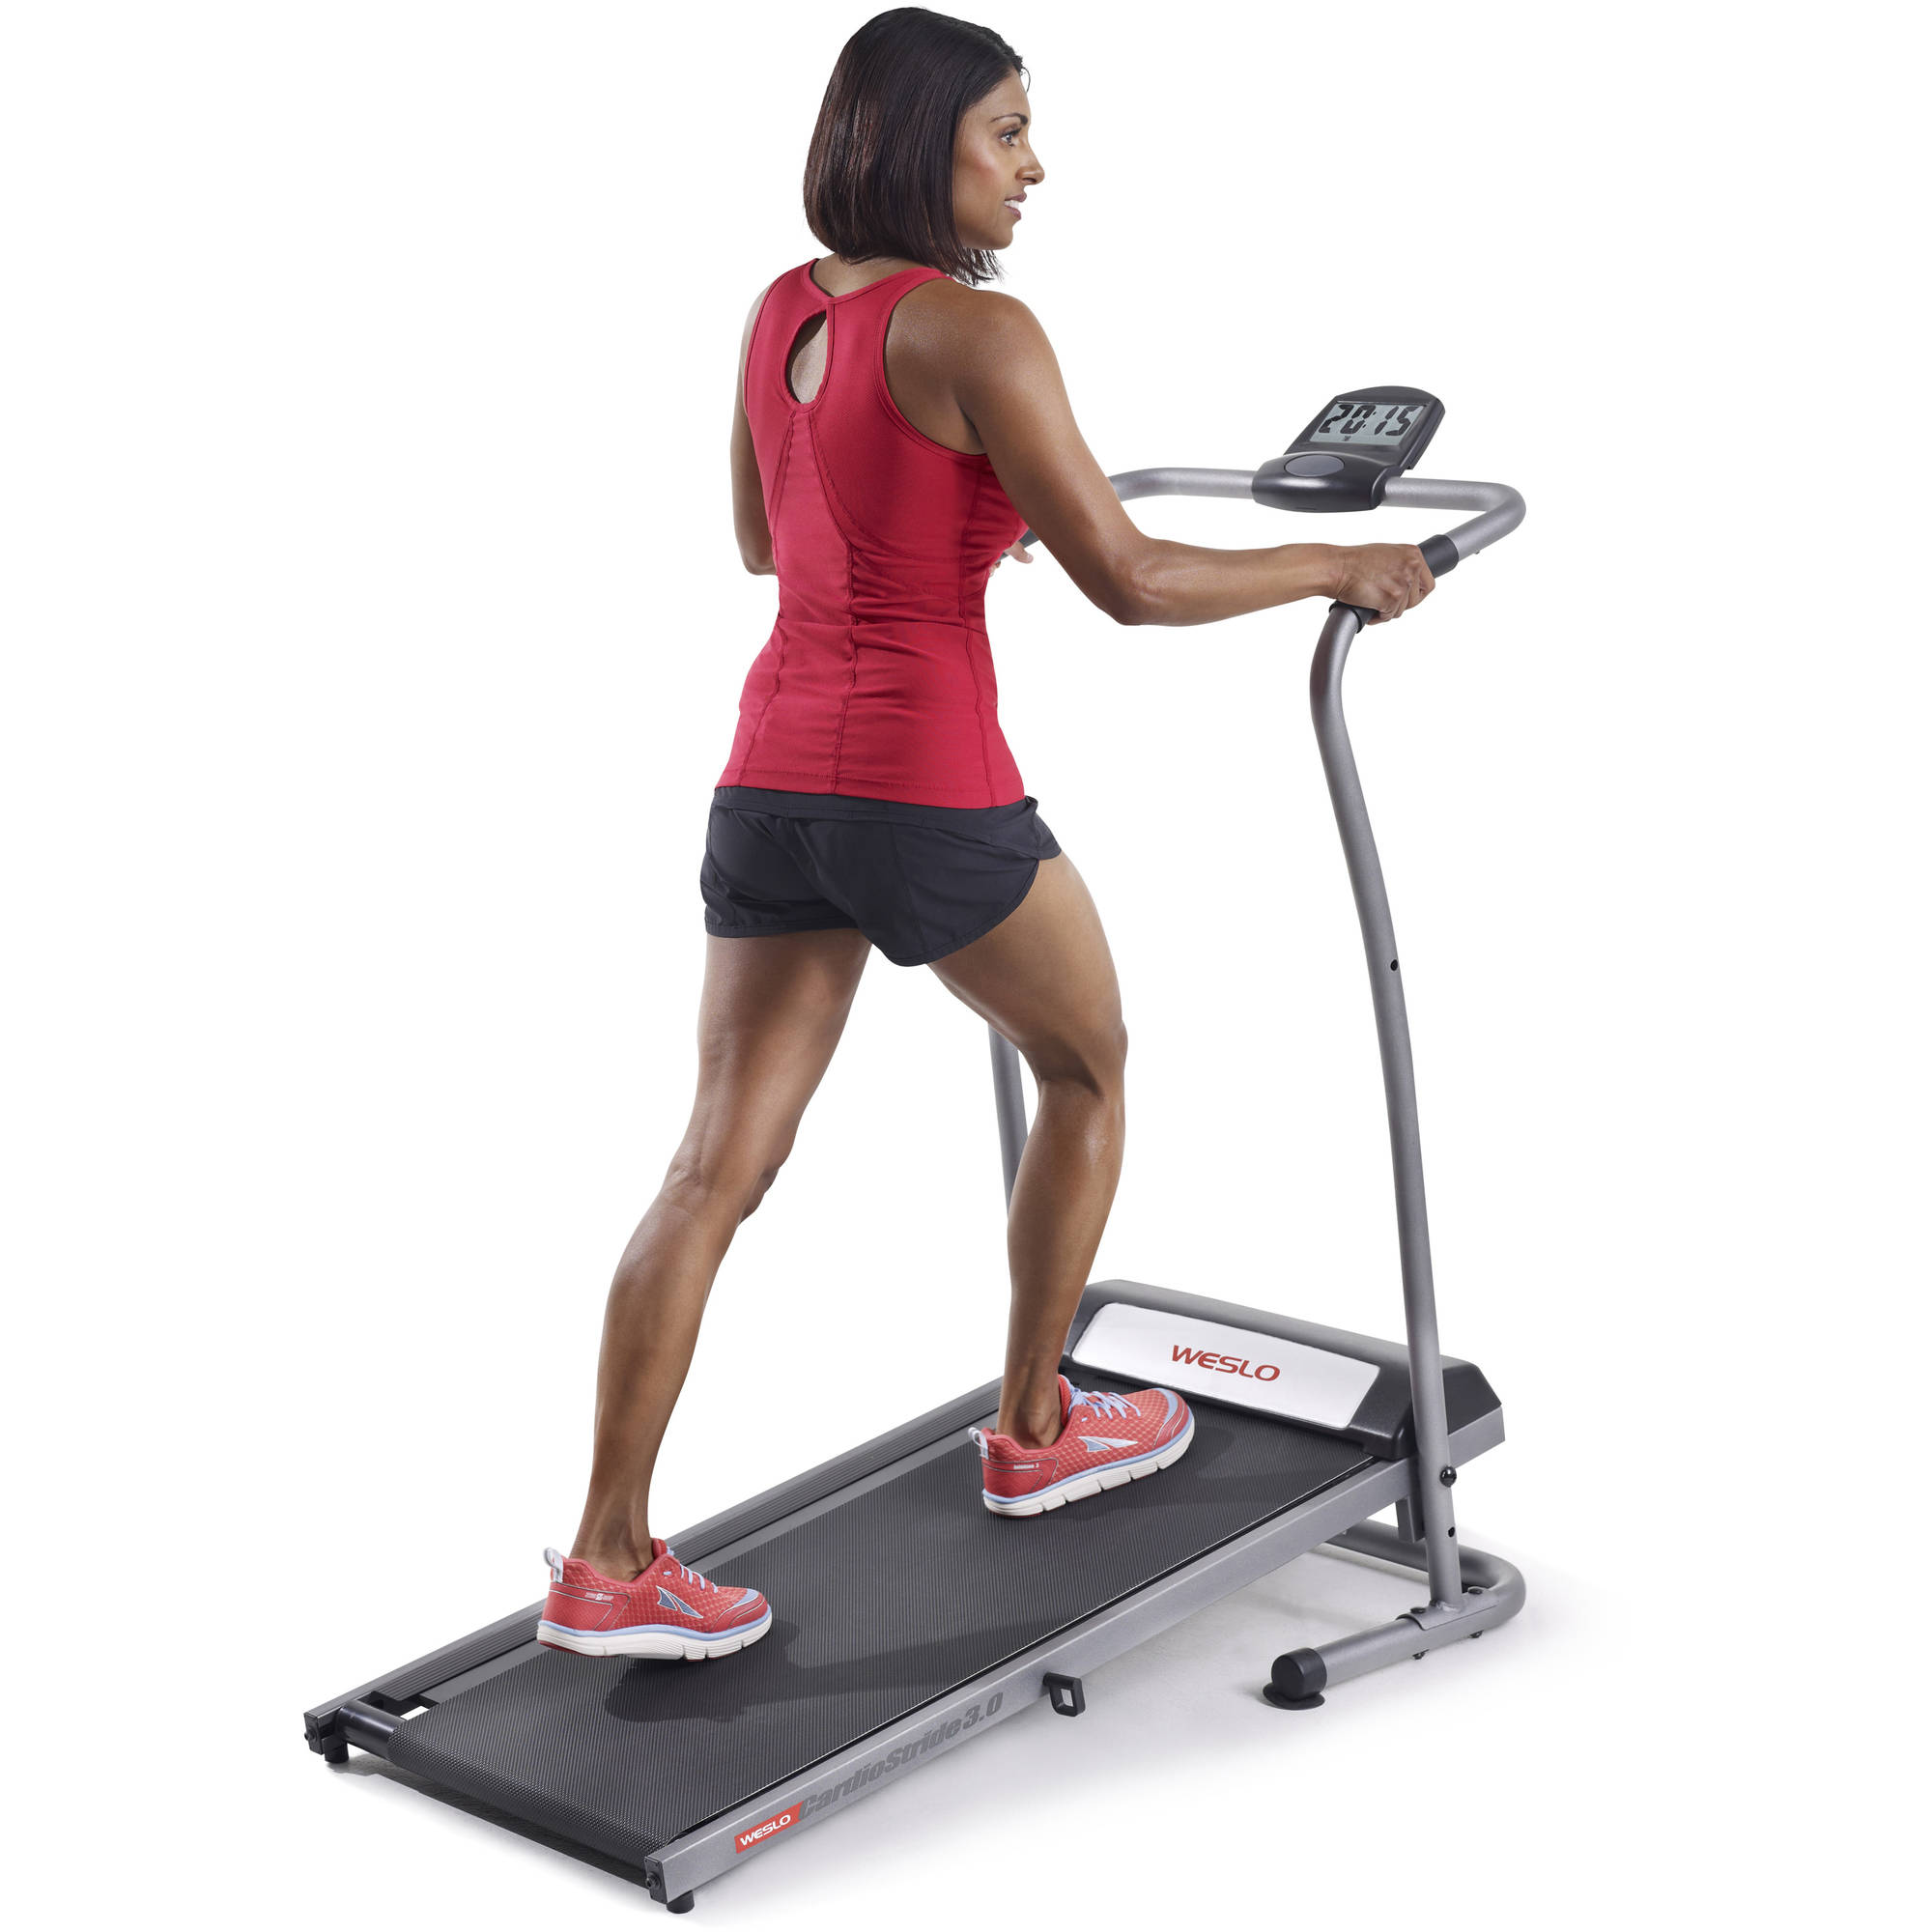 Weslo CardioStride 3.0 Manual Treadmill with 2 Level Incline and Large Display